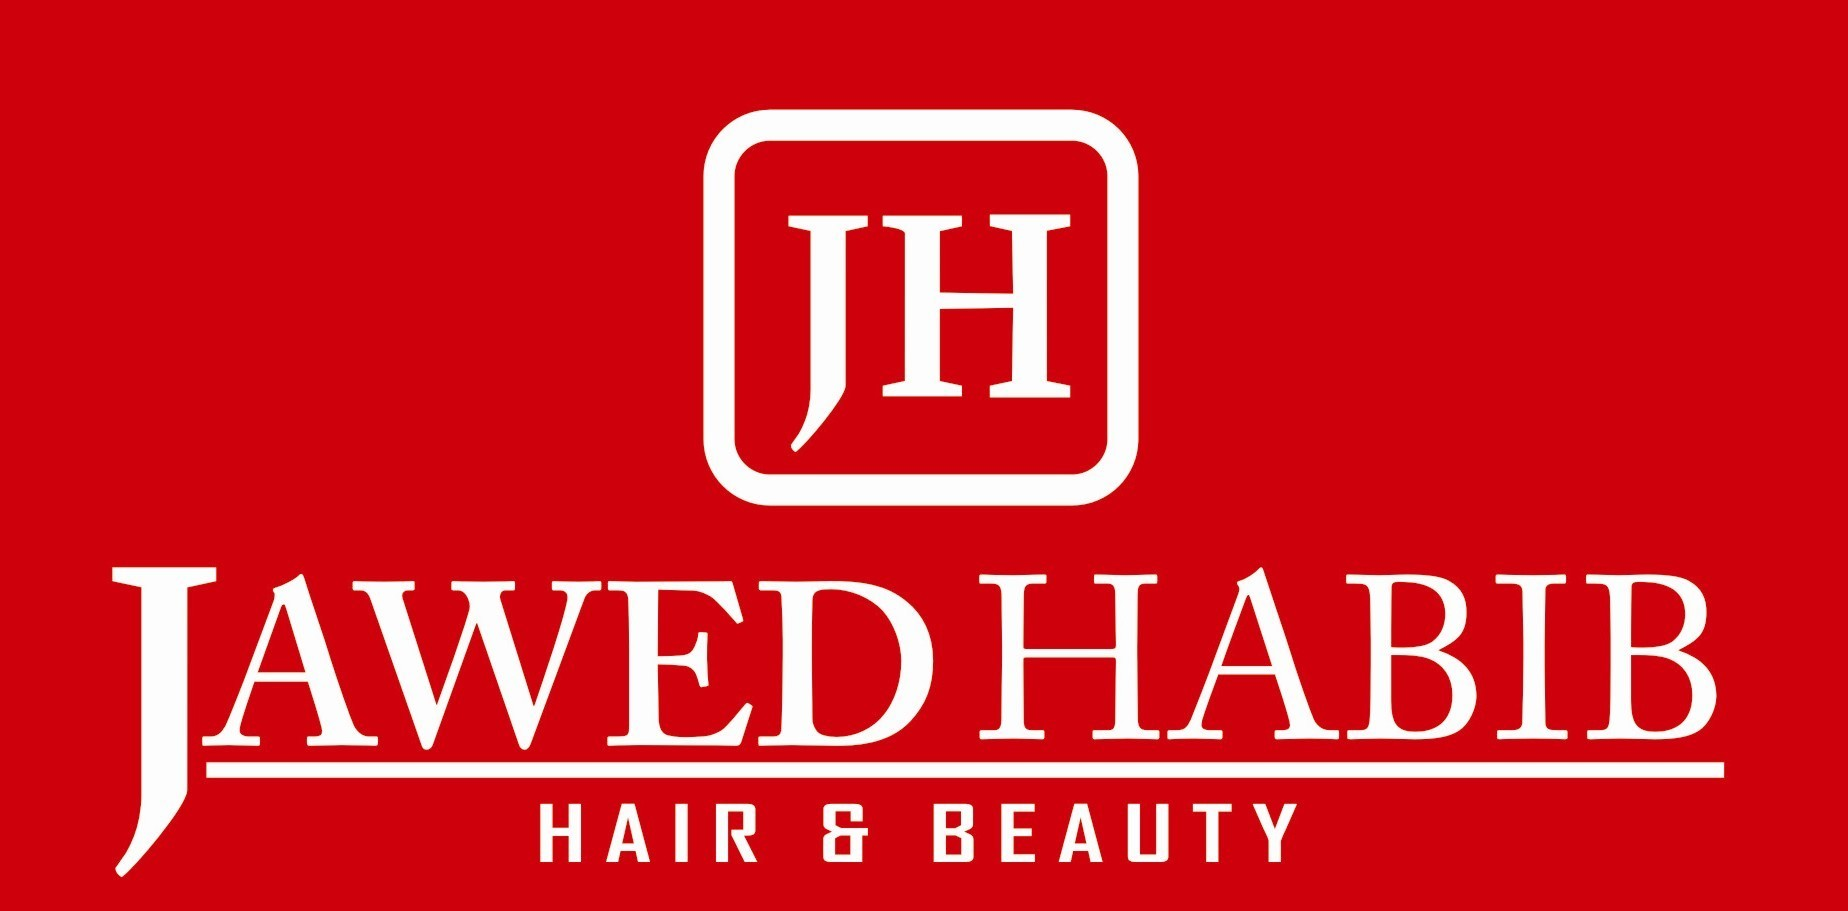 jawed habib hair & beauty salons - anisabad - patna reviews